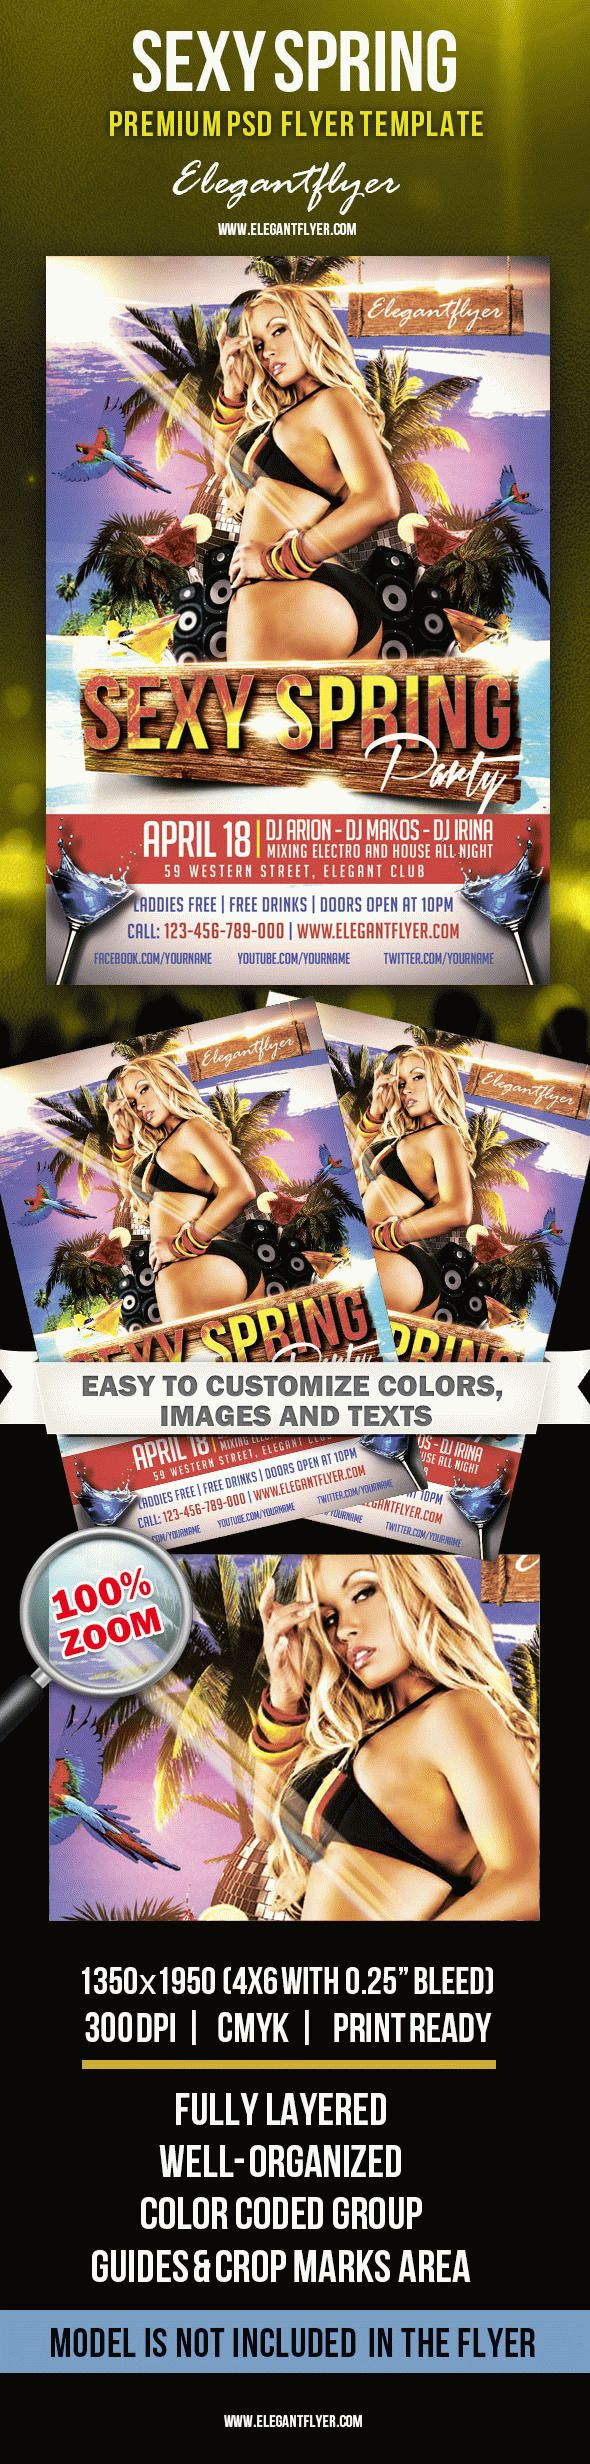 Sexy Spring – Premium Club flyer PSD Template